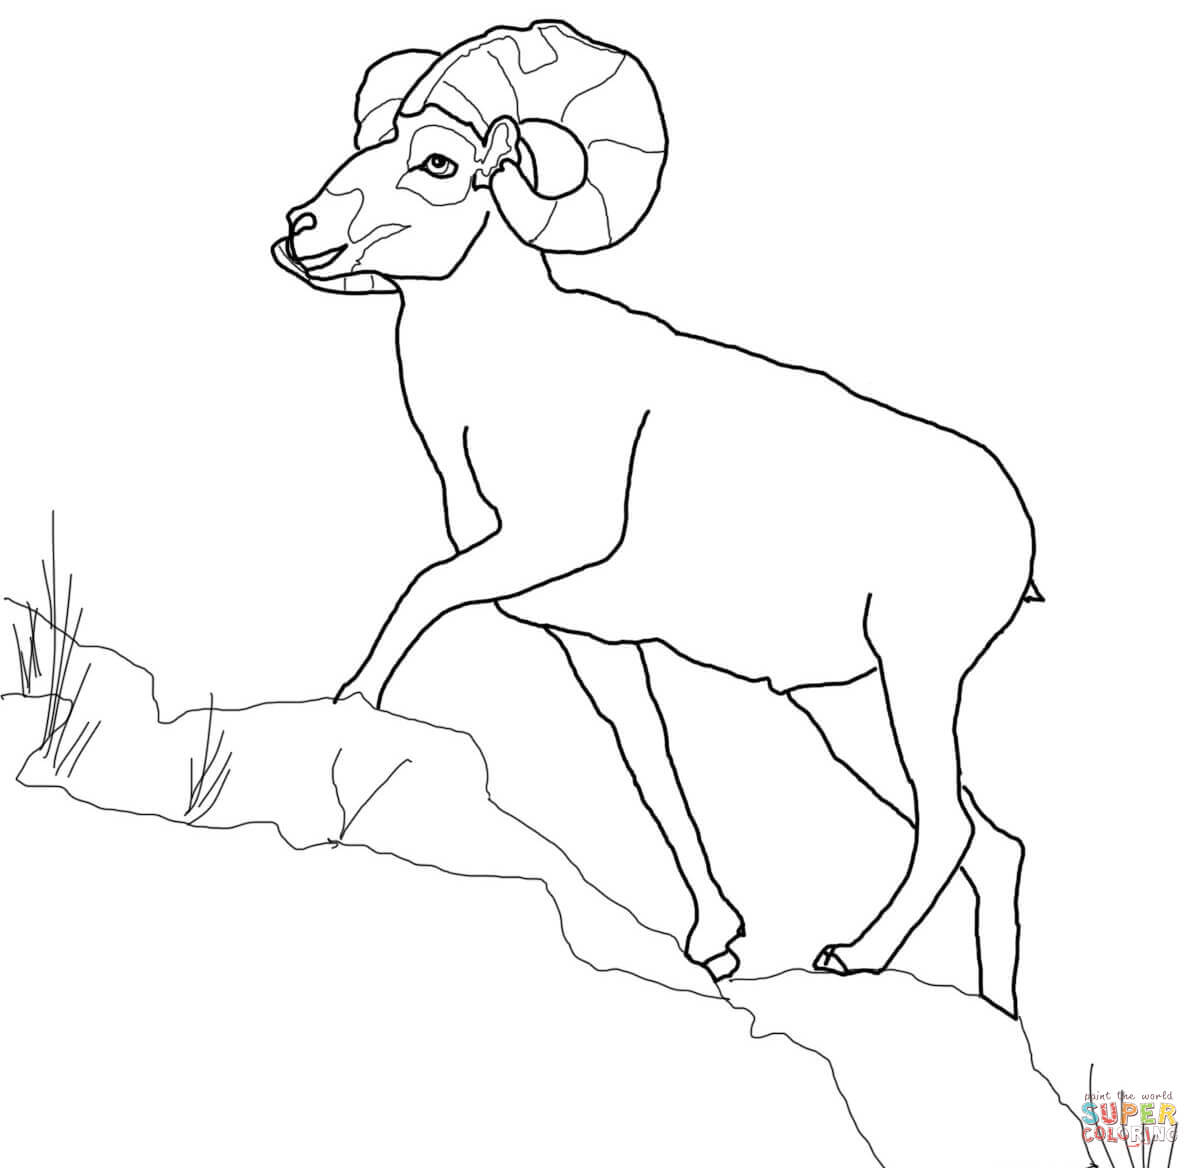 Bighorn Sheep coloring #11, Download drawings